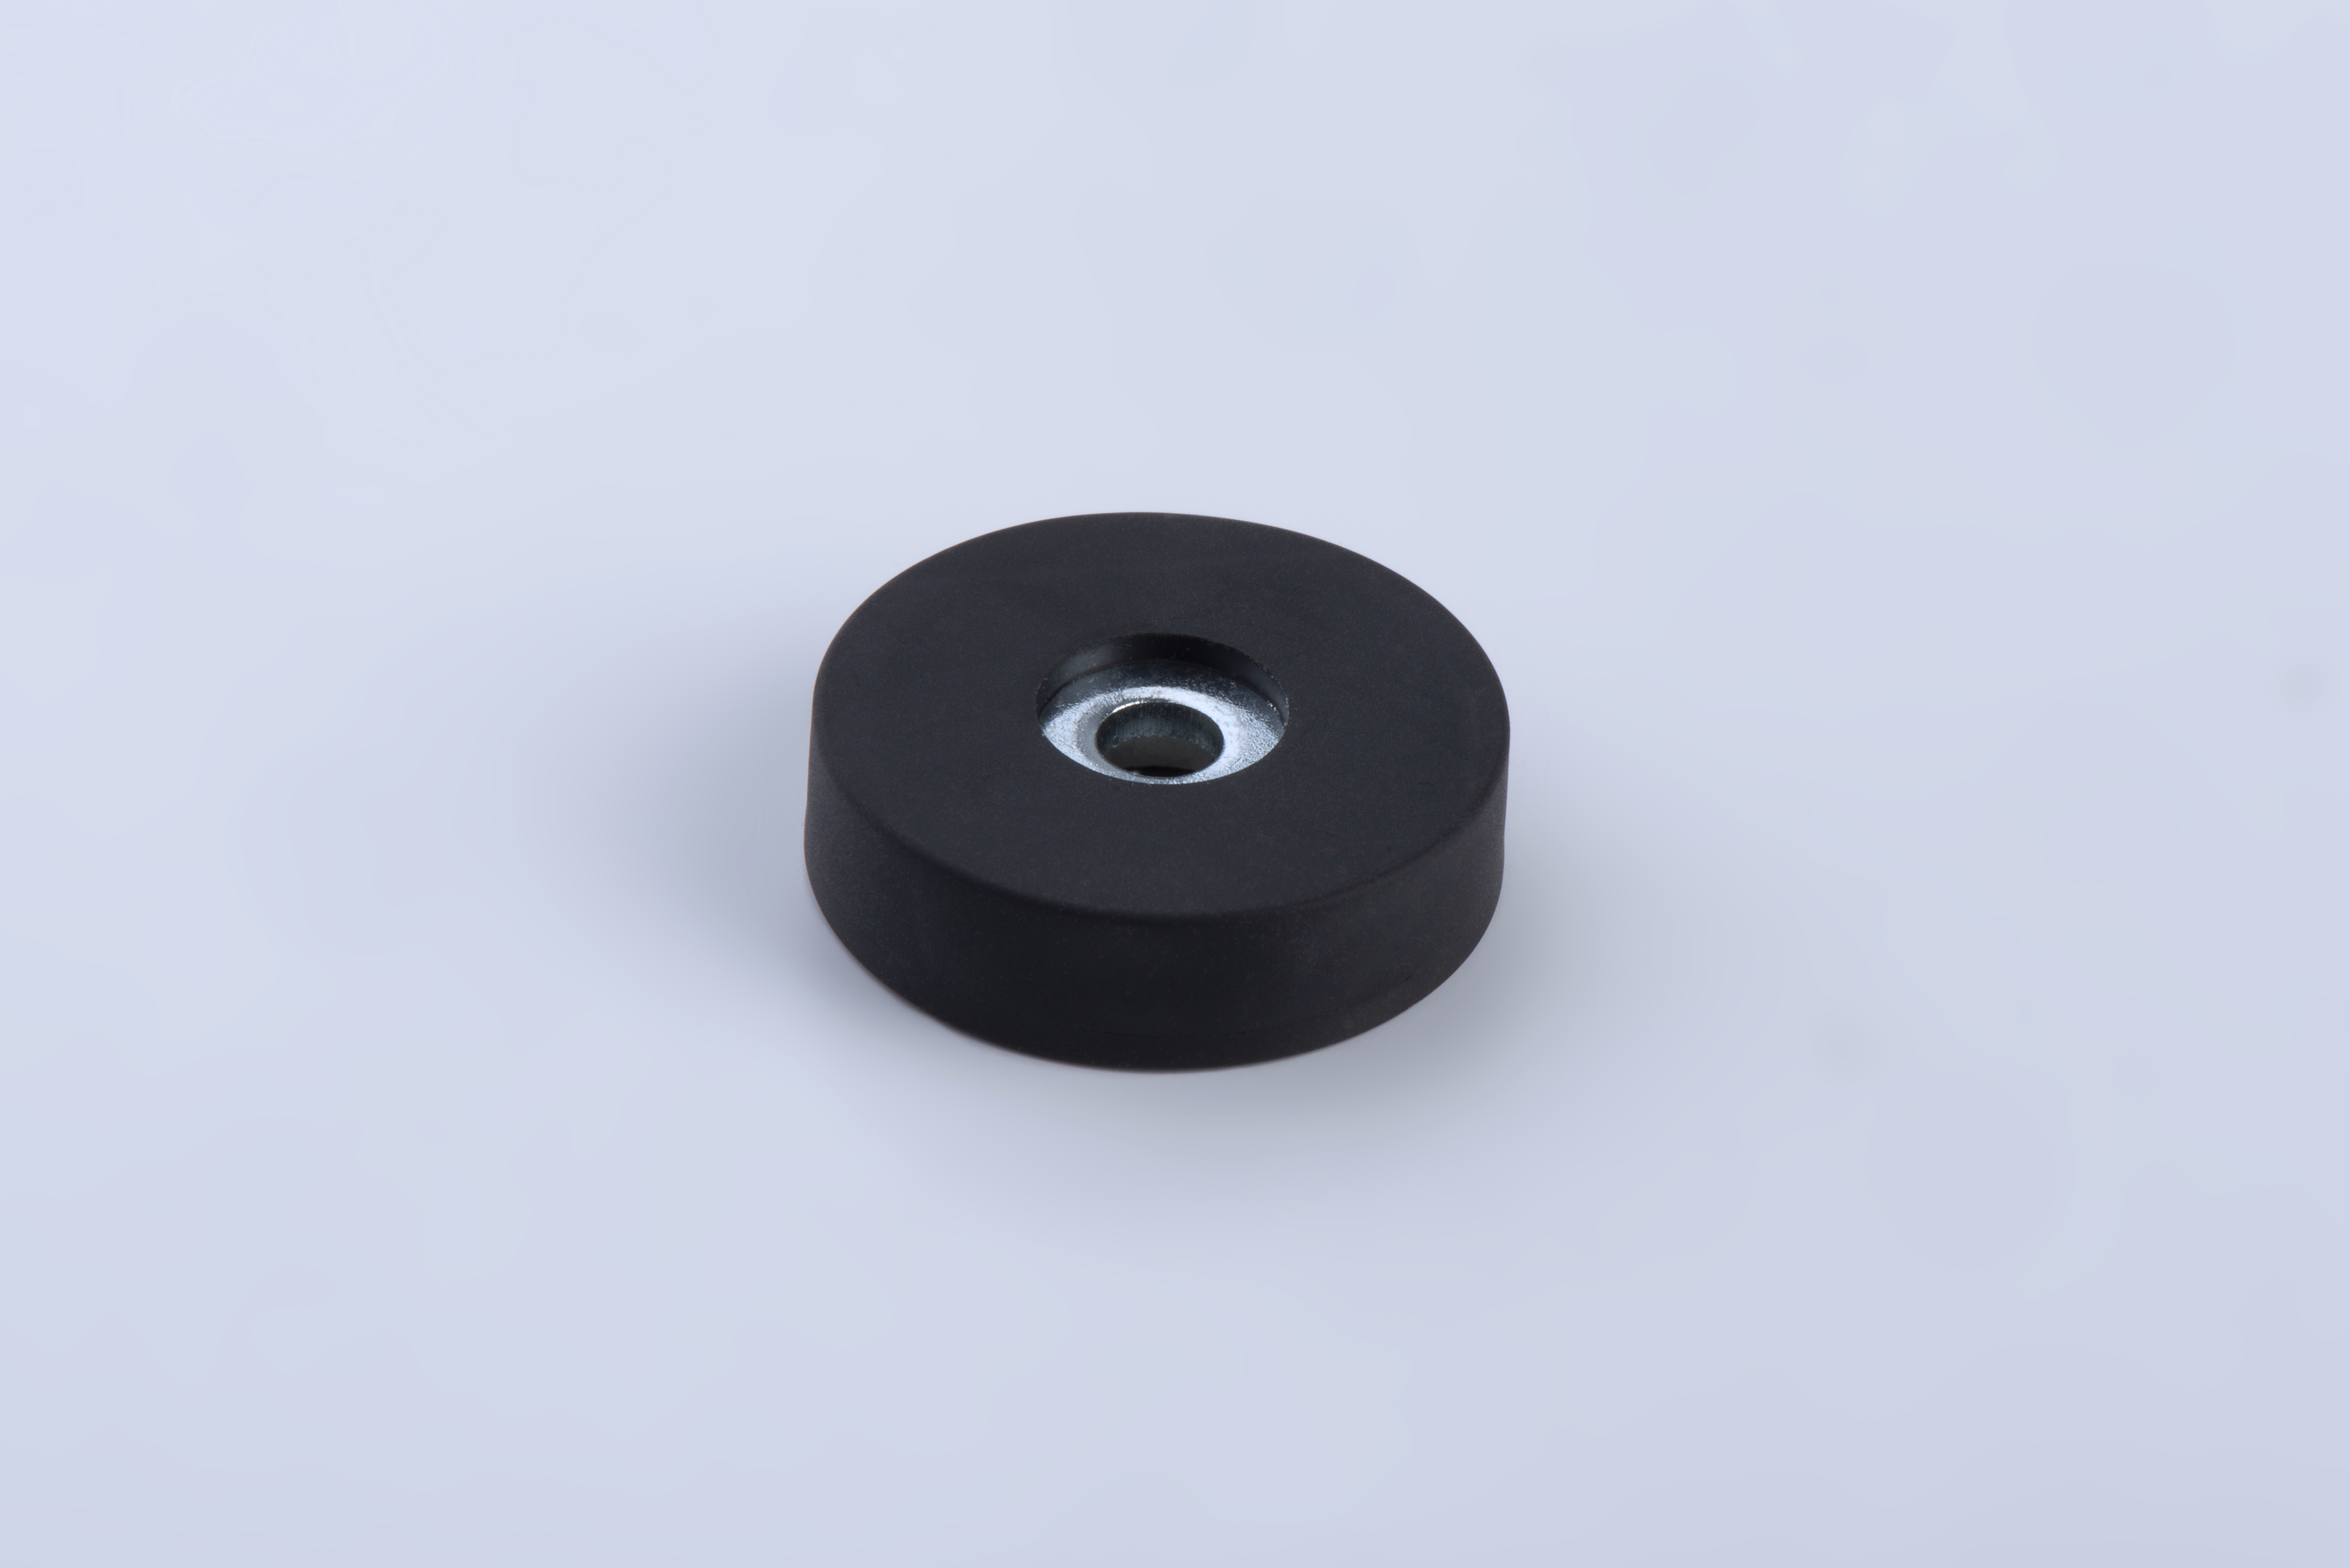 Pot magnet made of Neodym, with cylinder bore, black rubber coated, thyssenkrupp Magnettechnik